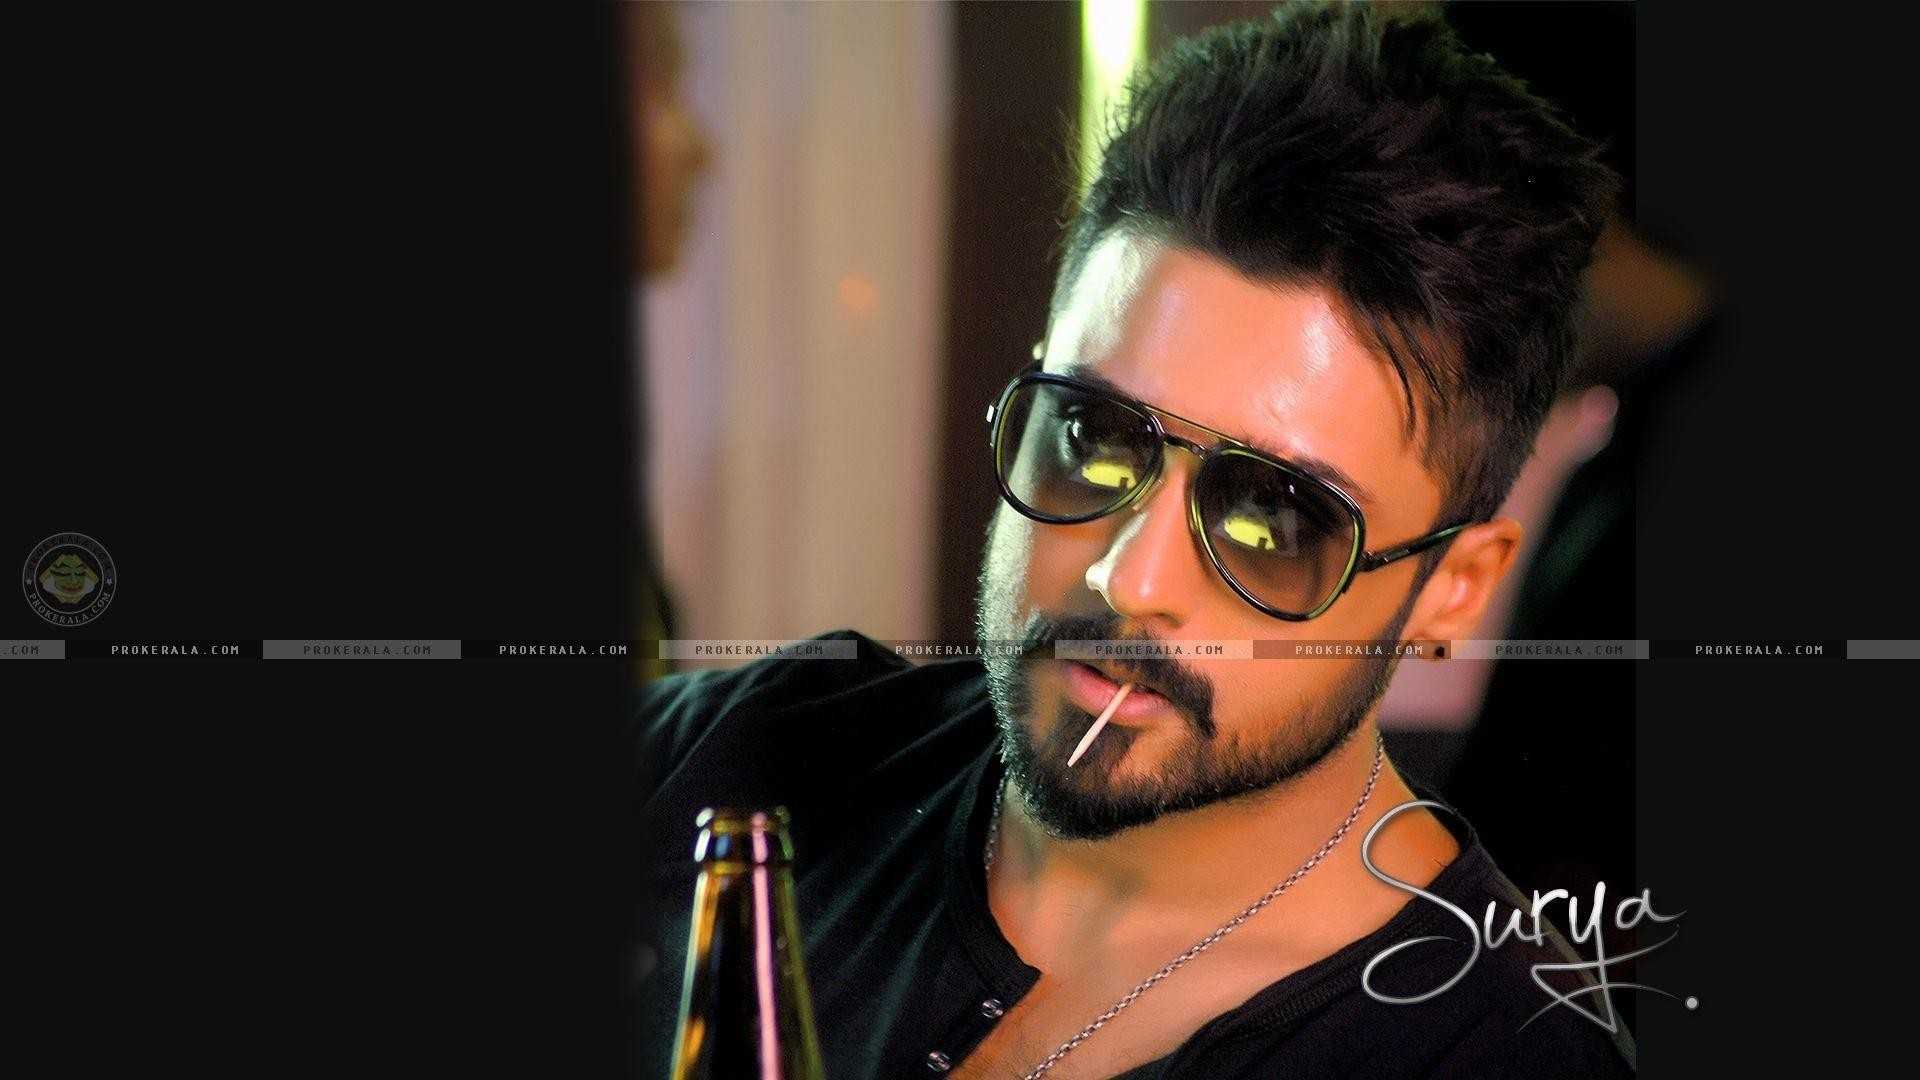 Surya hd wallpaper 2018 76 images 1920x1080 surya wallpaper altavistaventures Image collections